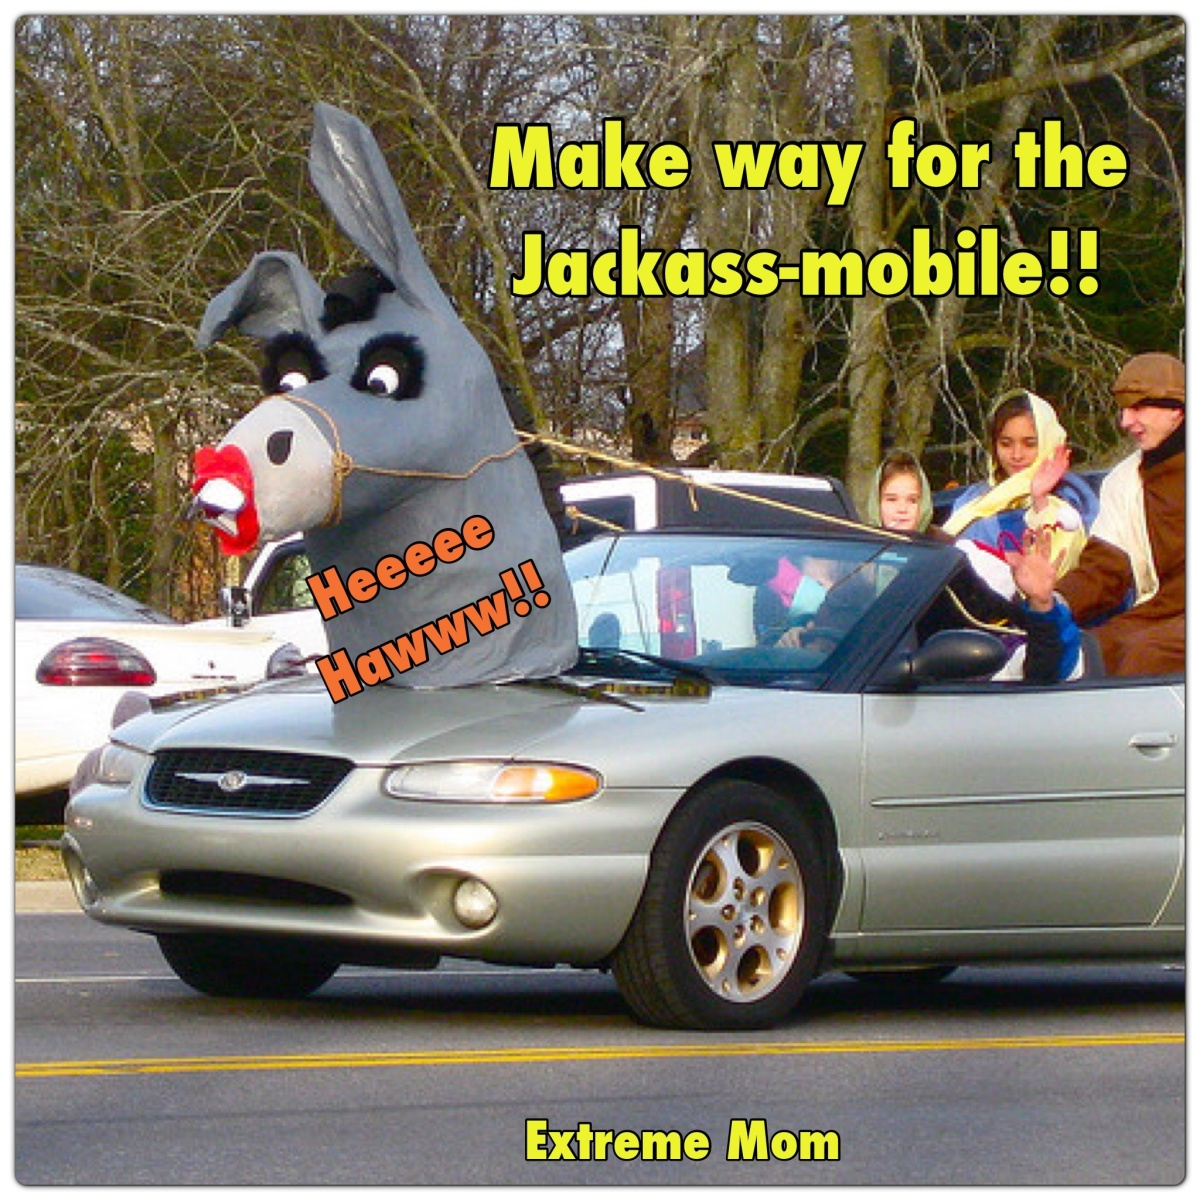 Make Way for the Jackass-mobile